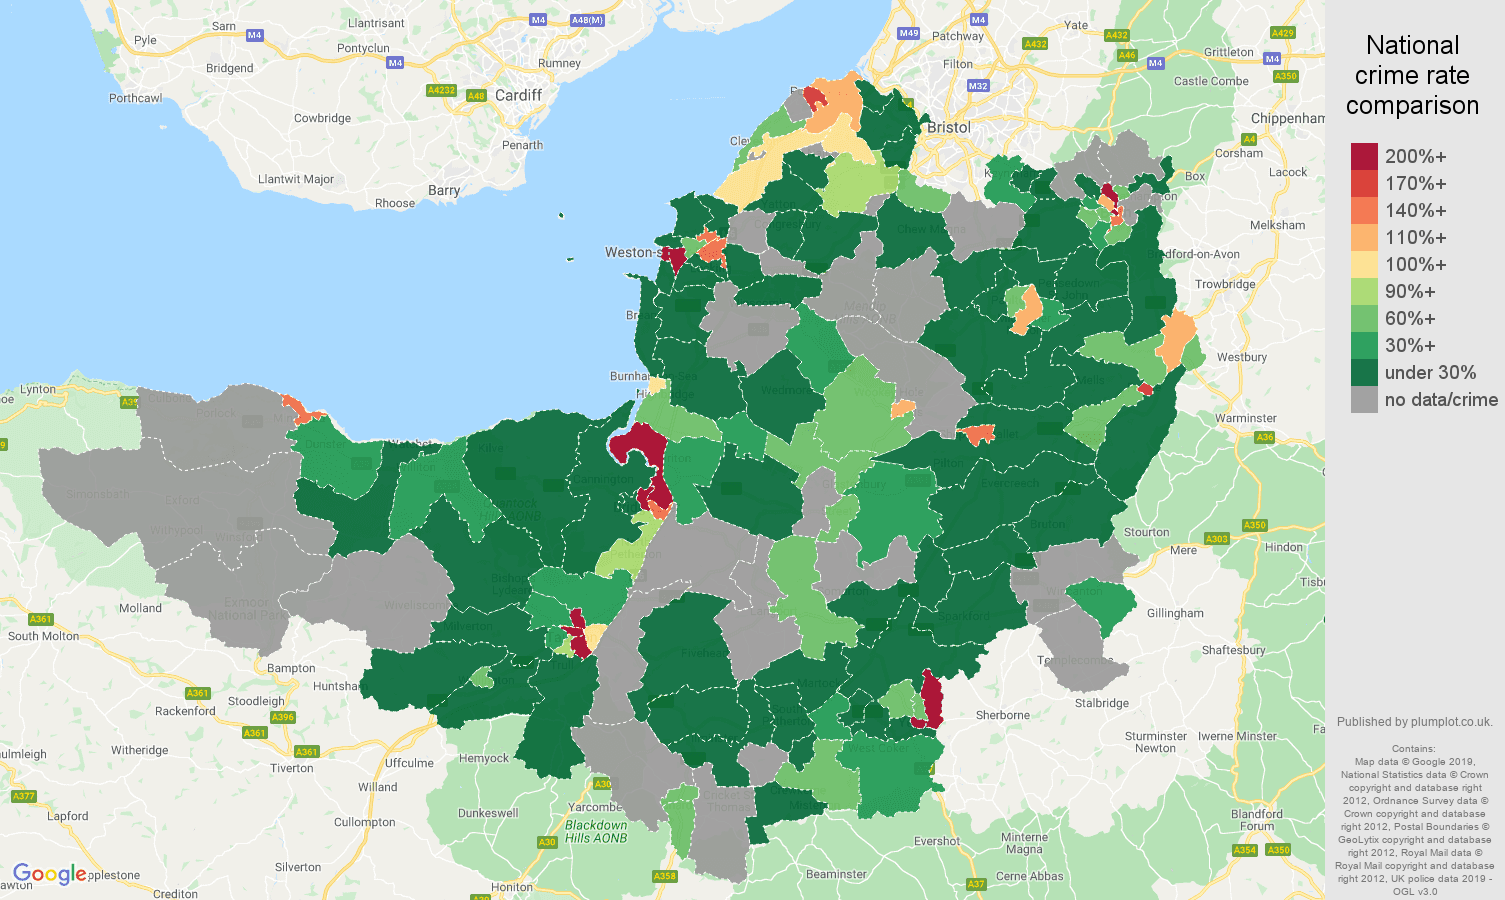 Somerset shoplifting crime rate comparison map